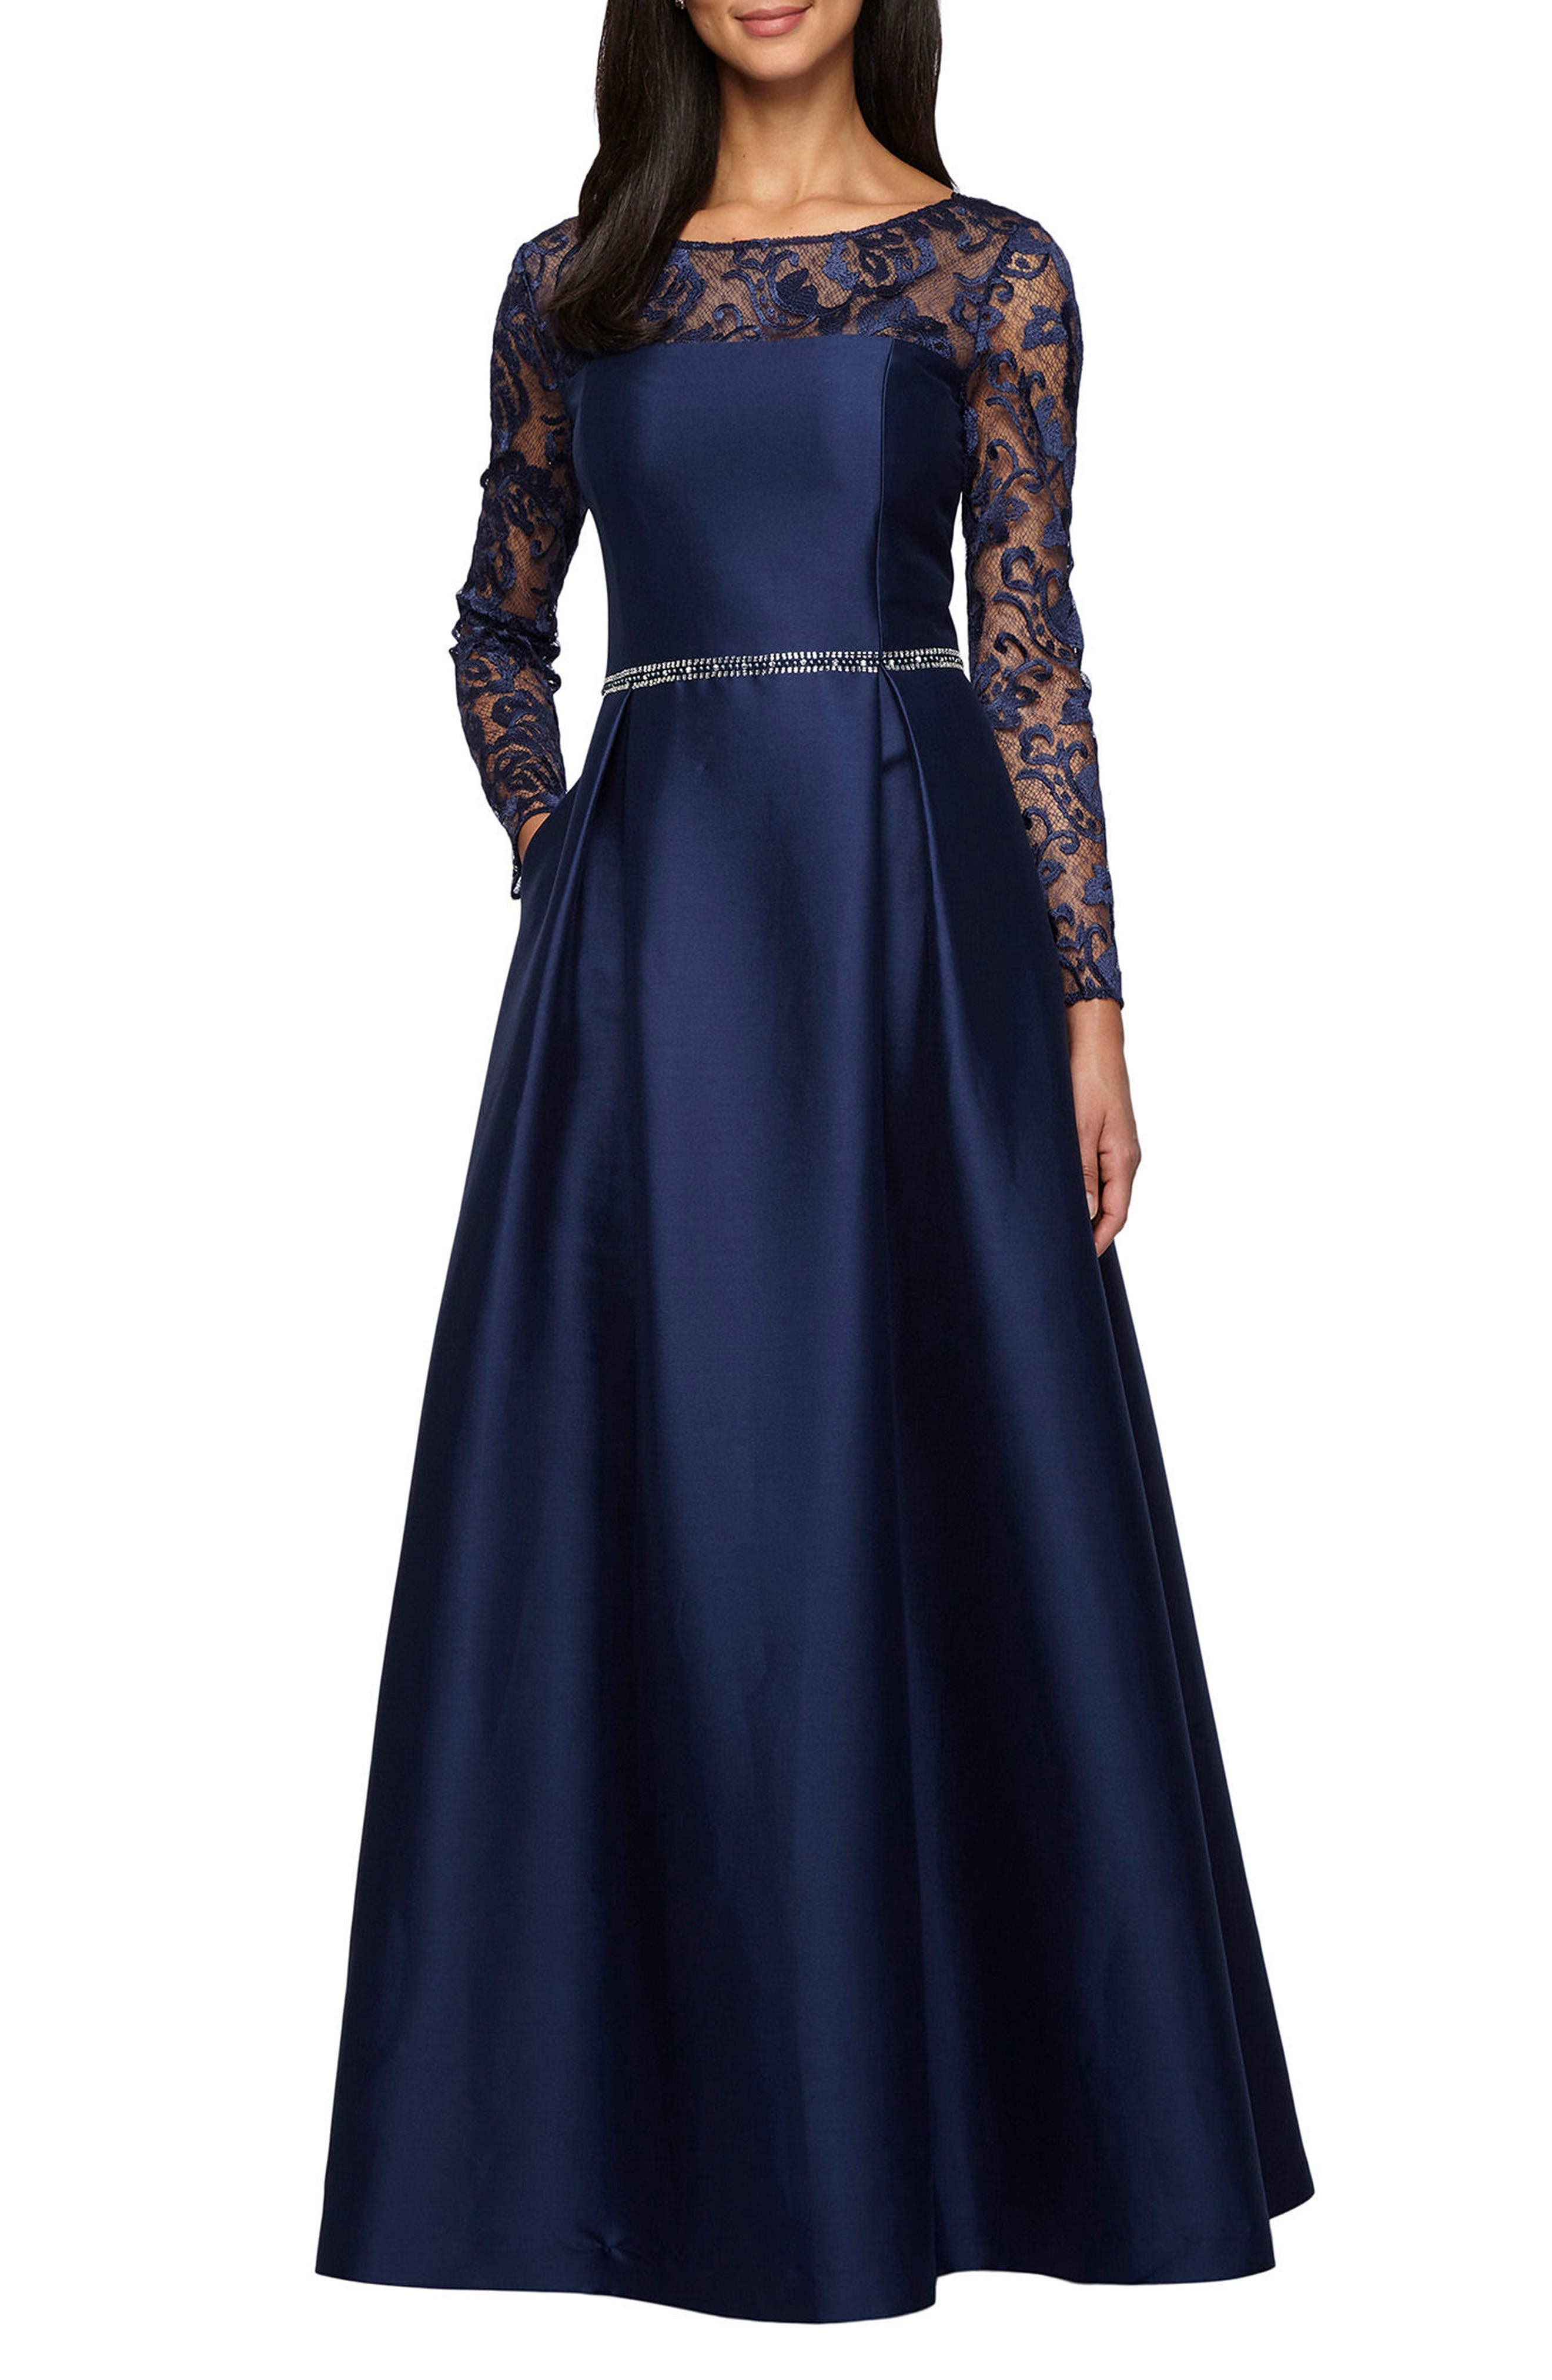 Alternate Image 1 Selected - Alex Evenings Illusion Neckline Gown